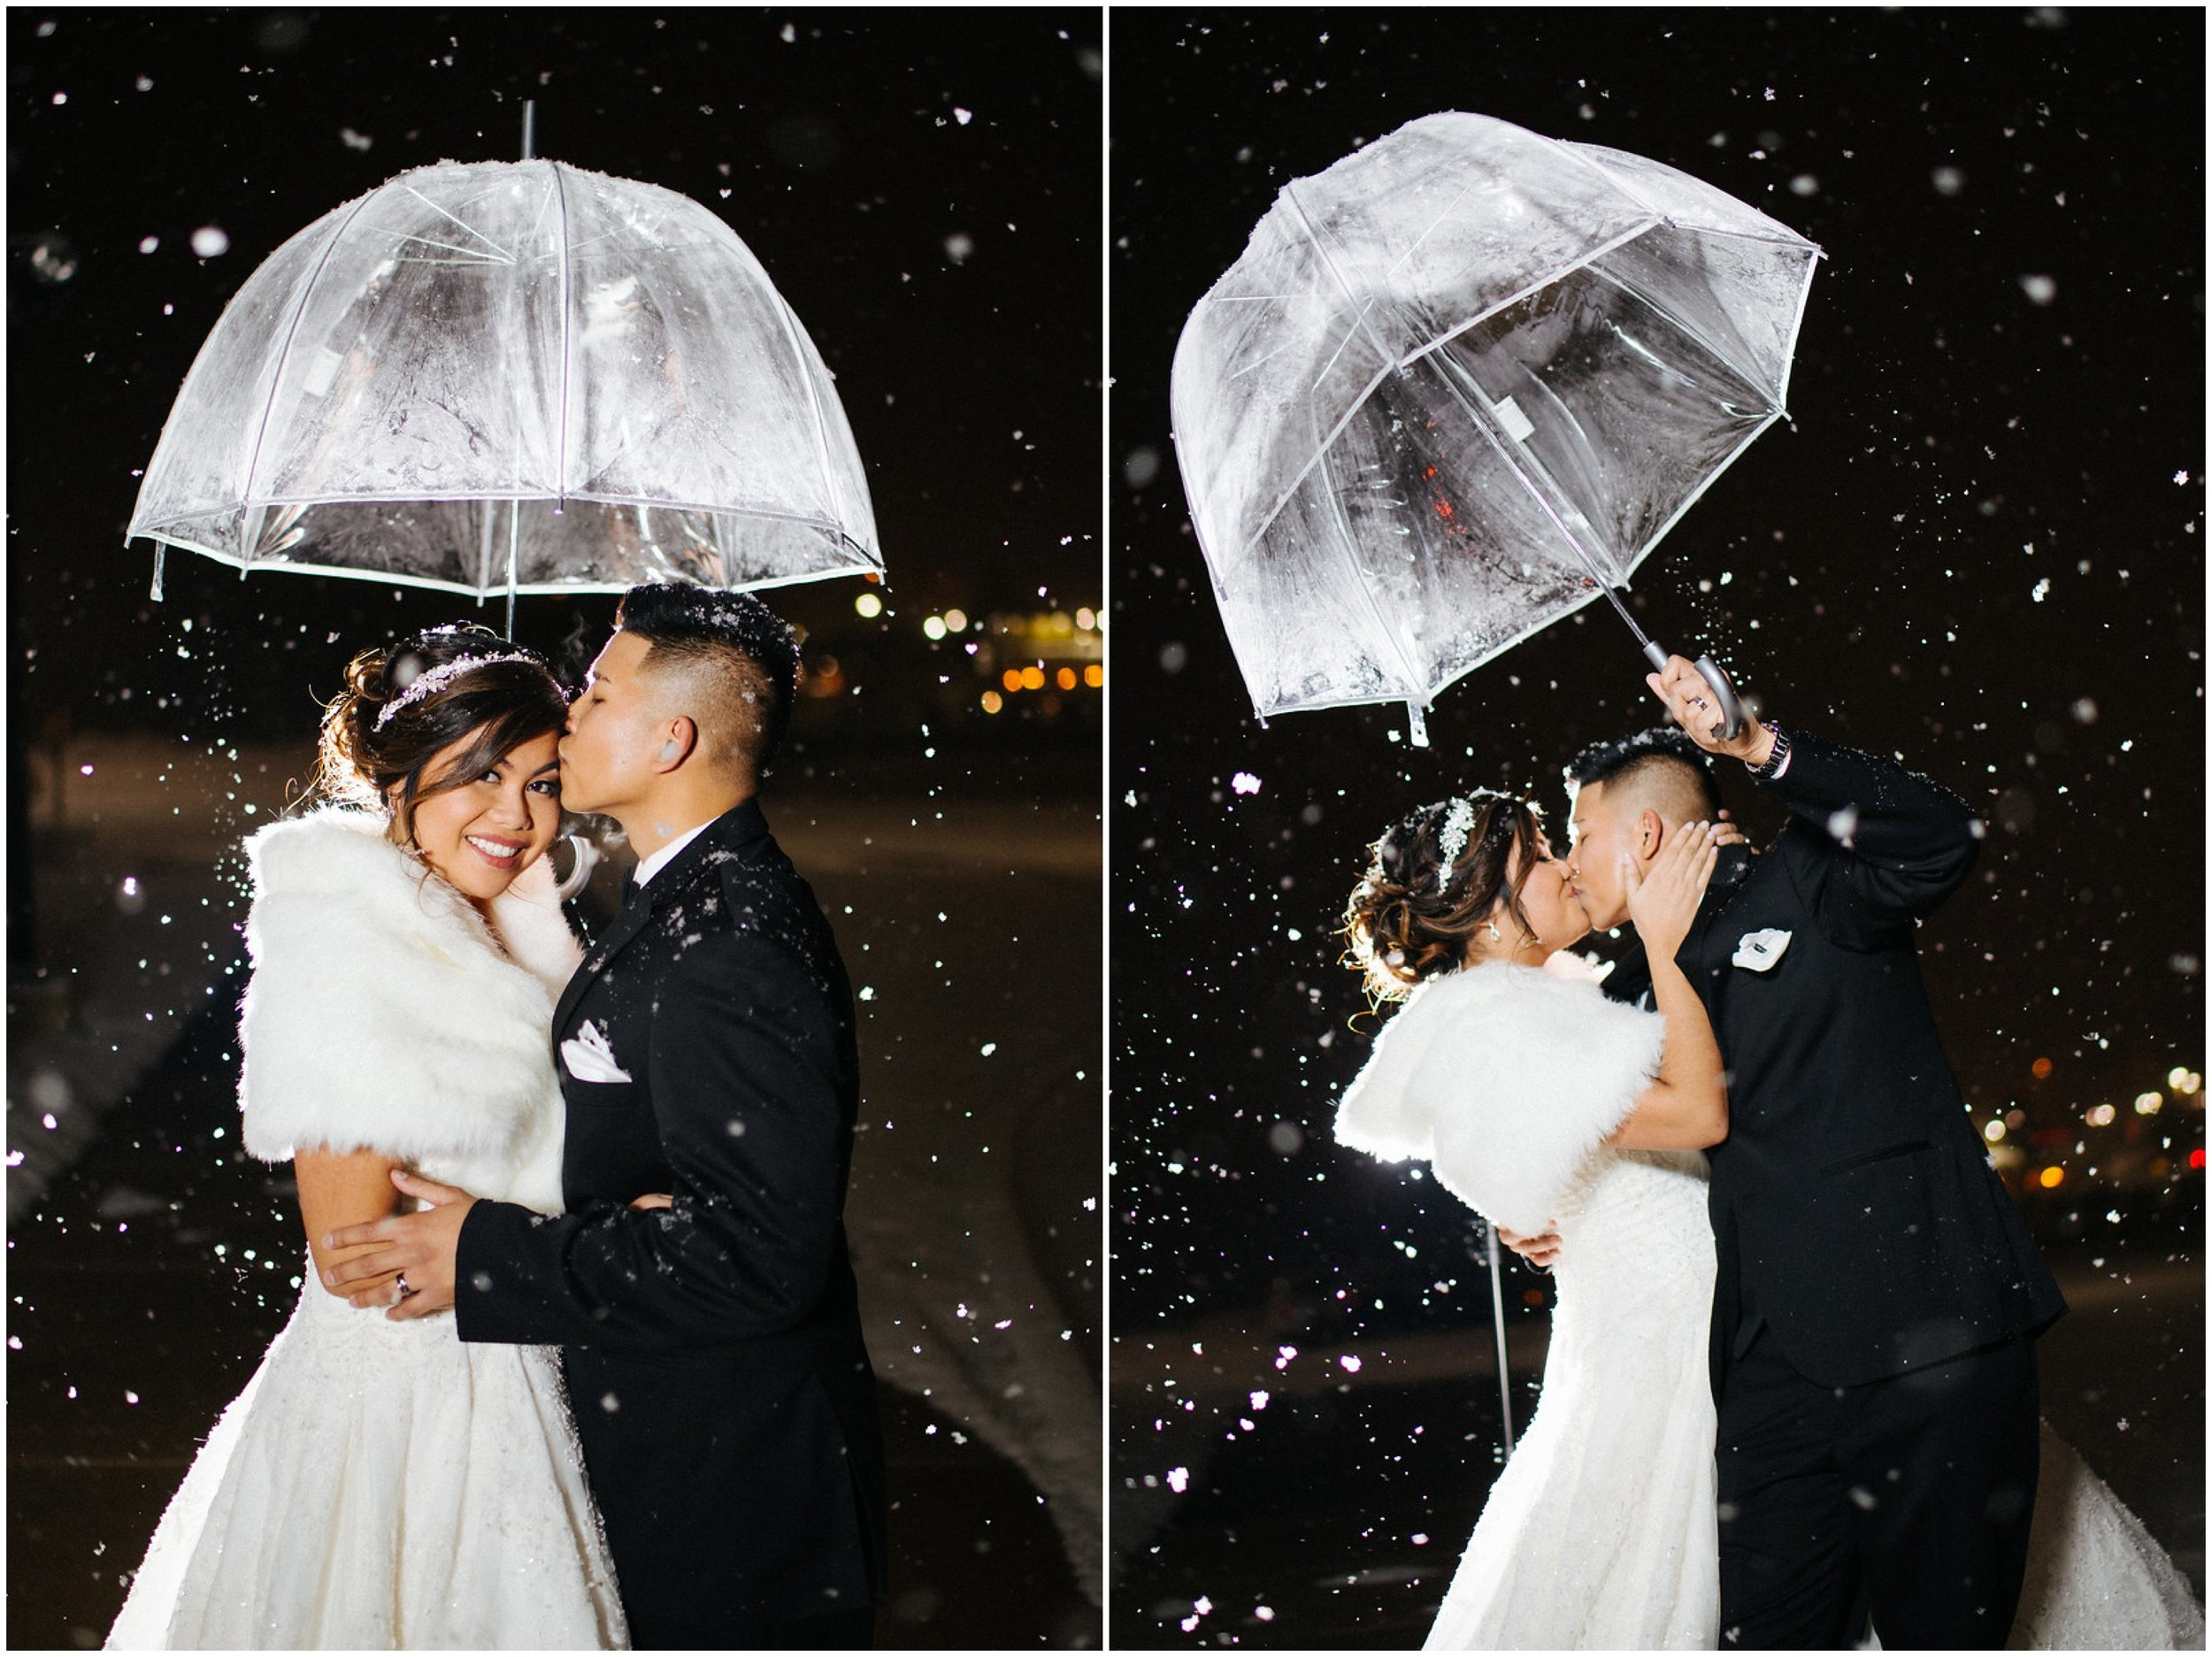 Le Cape Weddings- Chicago Wedding - Ryma and Eejay_-471-X3_LuxuryDestinationPhotographer.jpg